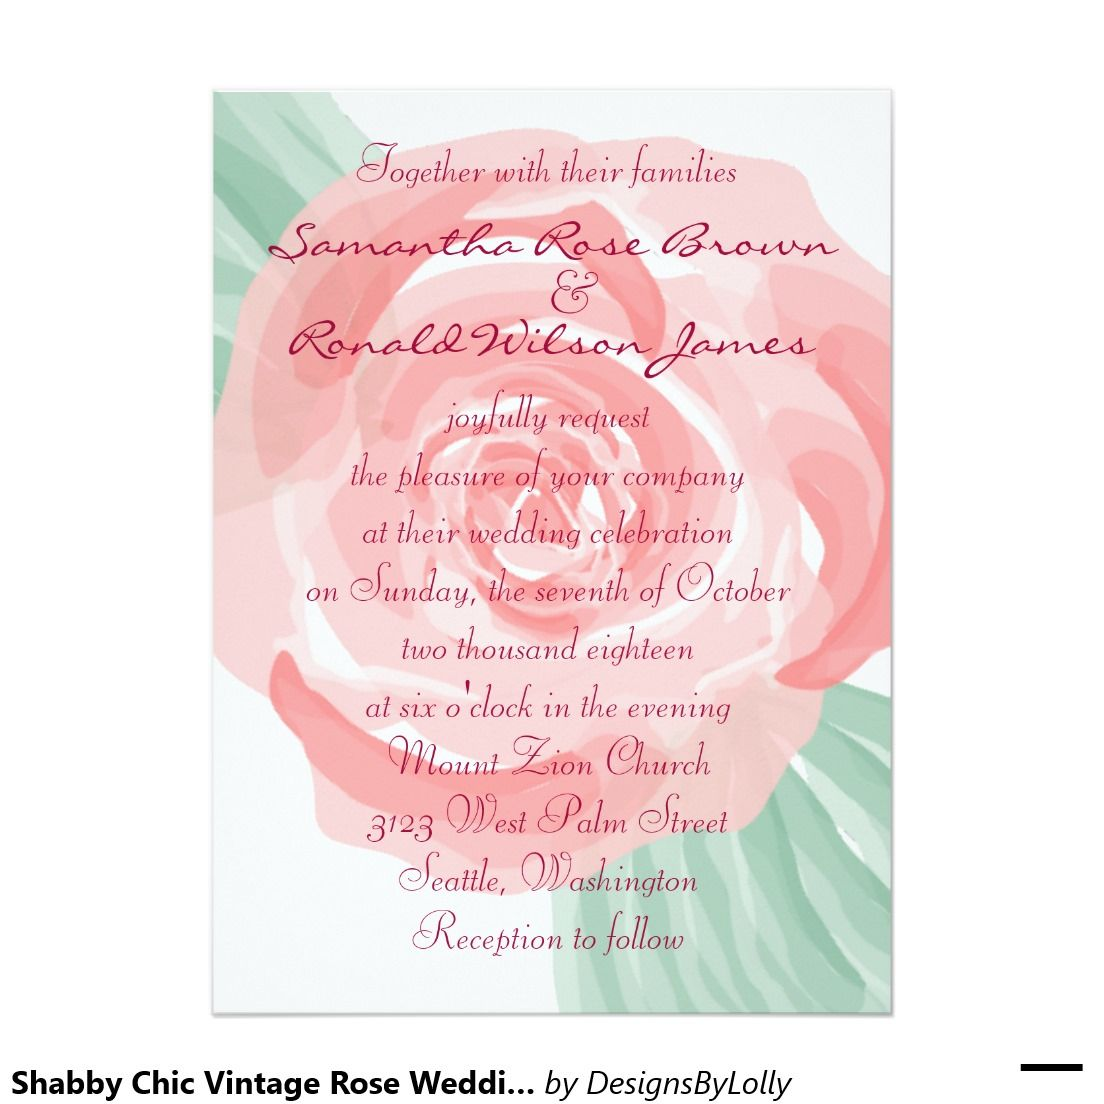 Shabby Chic Vintage Rose Wedding Invitations. Aren\'t these just the ...